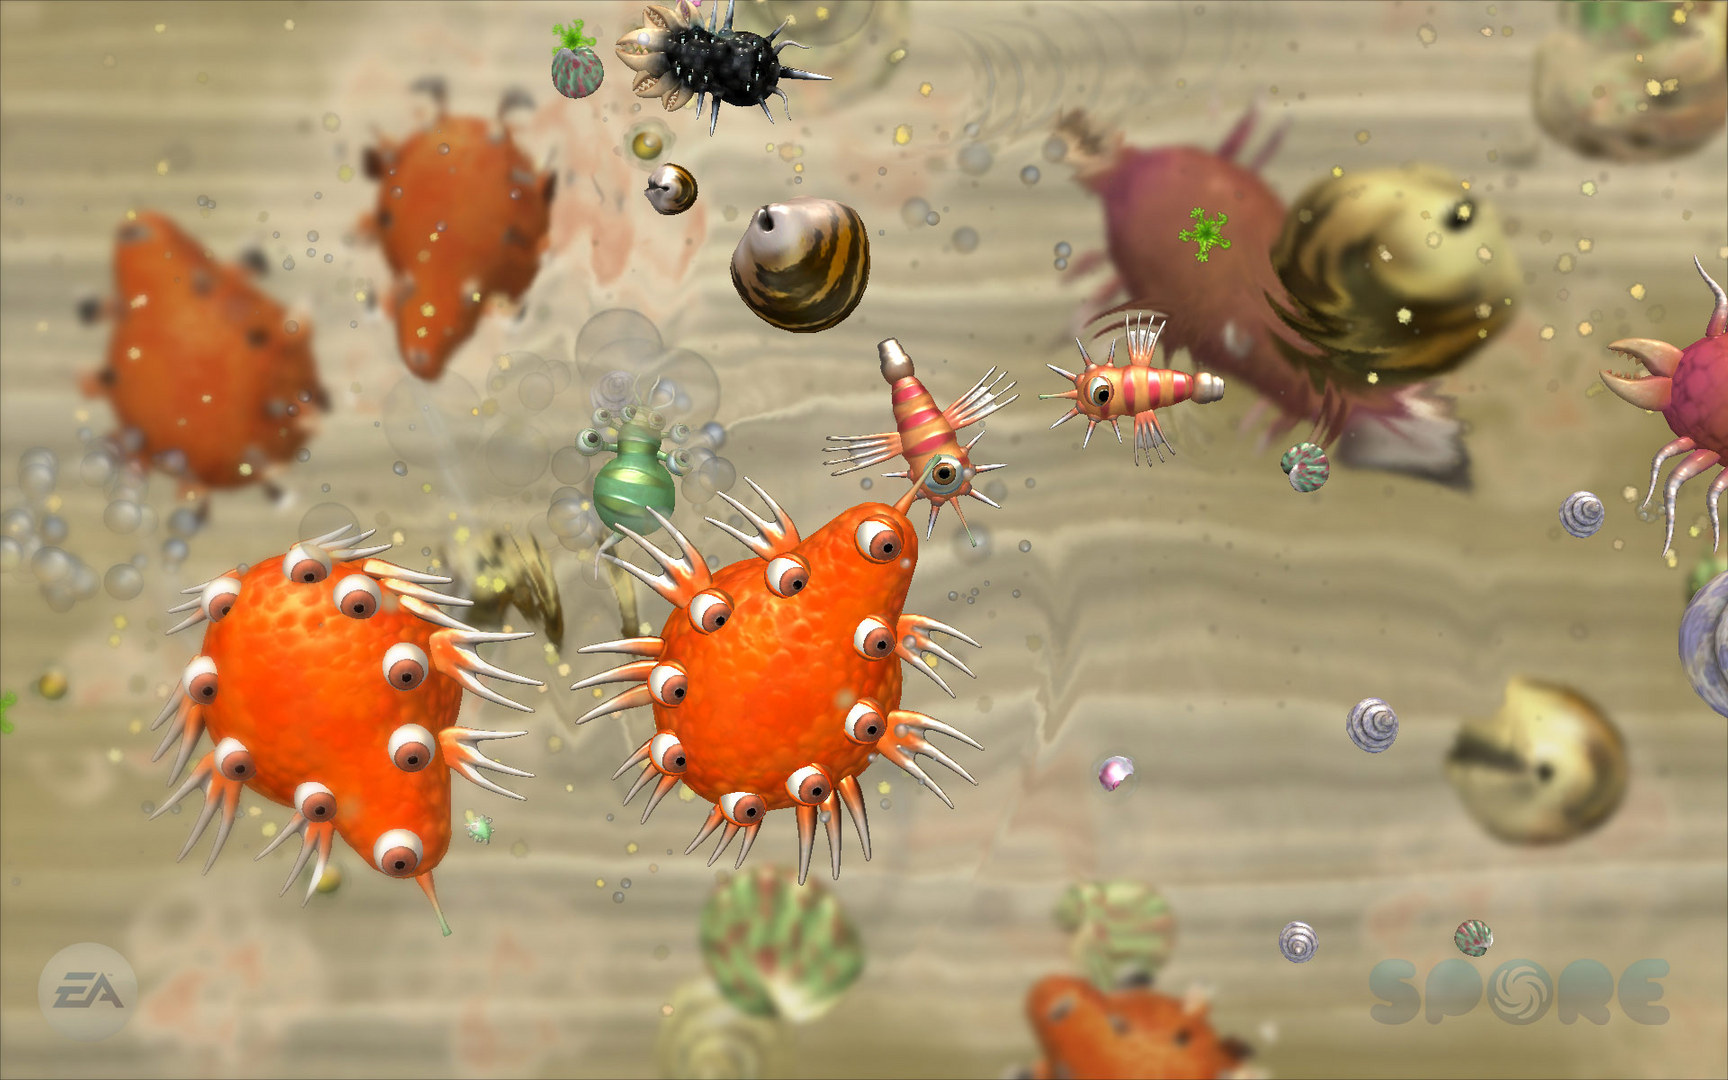 how to get spore for free on steam